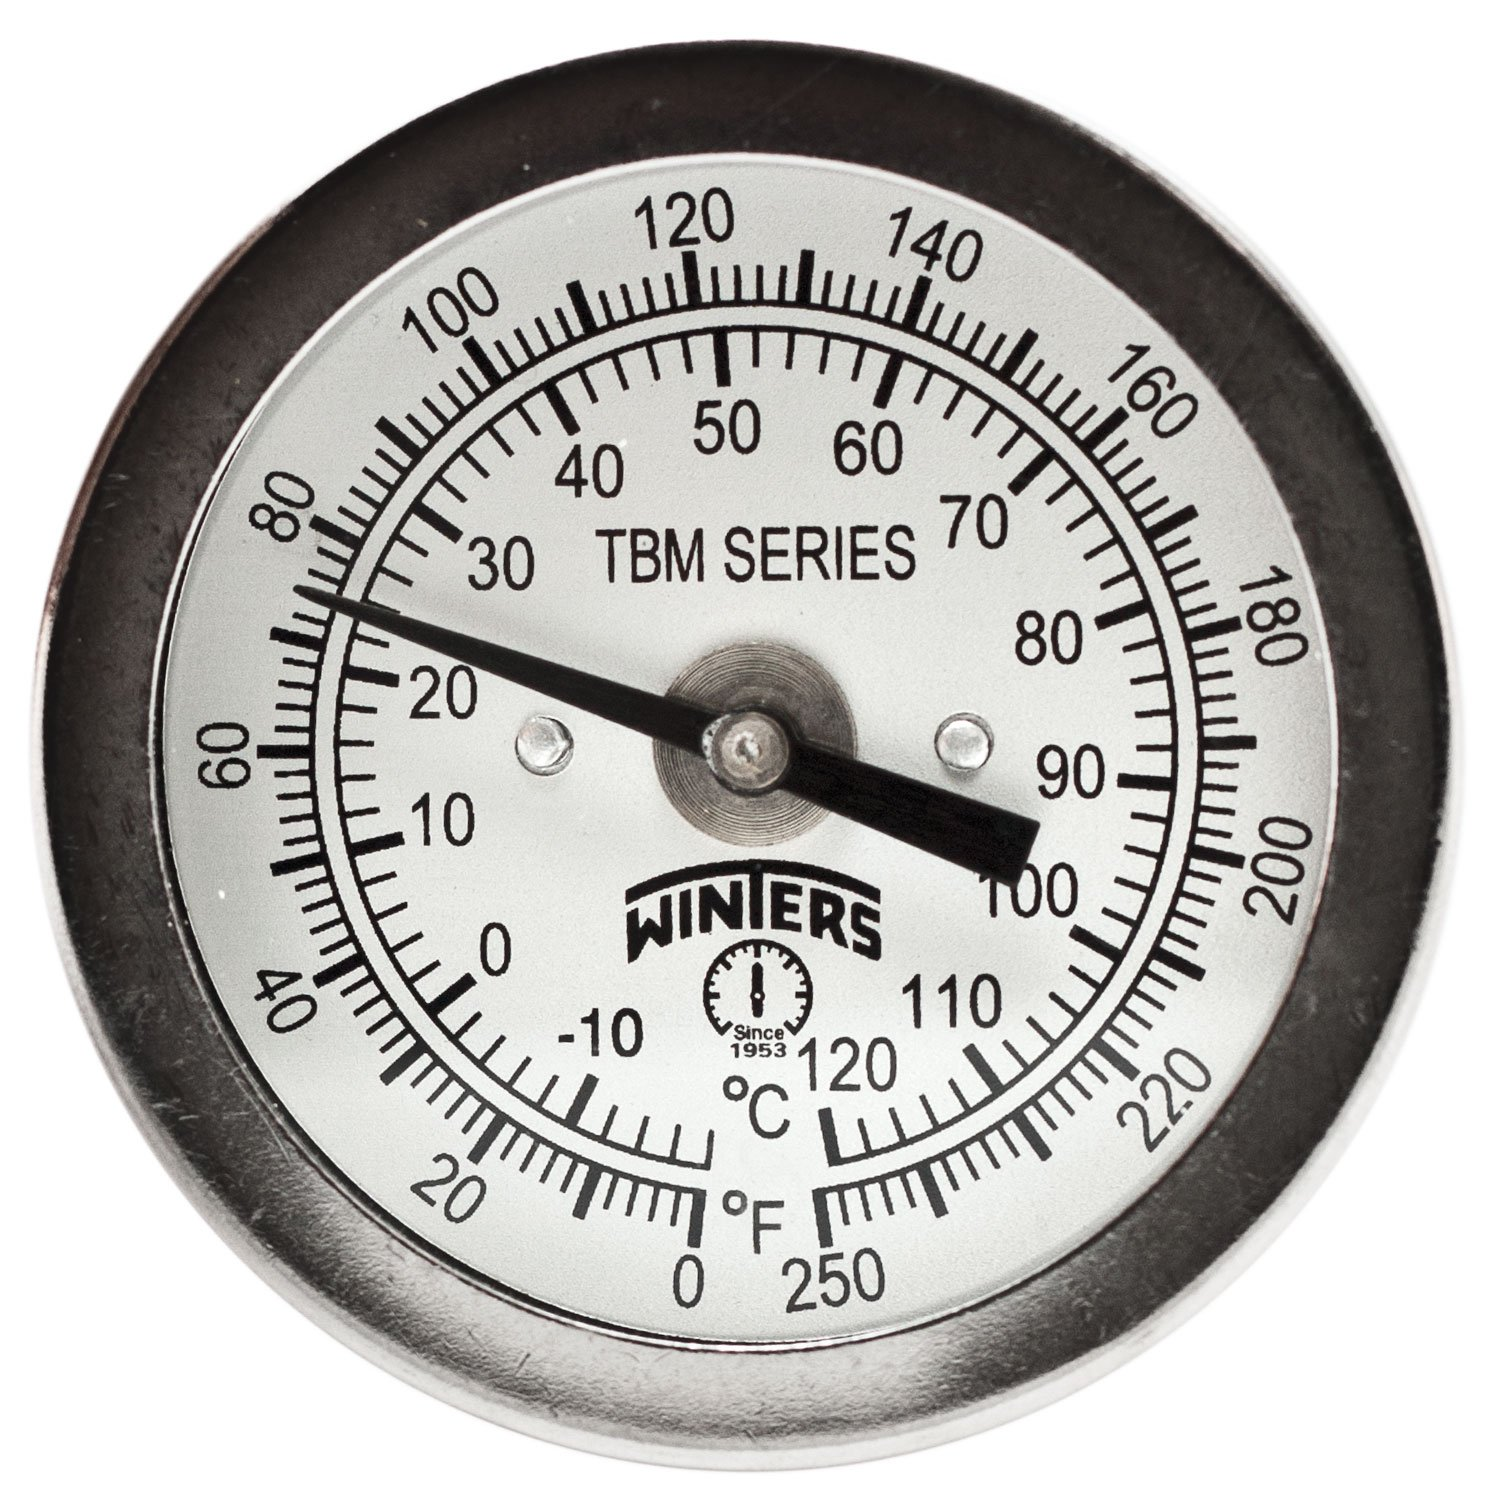 Winters TBM Series Stainless Steel 304 Dual Scale Bi-Metal Thermometer, 4'' Stem, 1/4'' NPT Fixed Center Back Mount Connection, 2'' Dial, 0-250 F/C Range